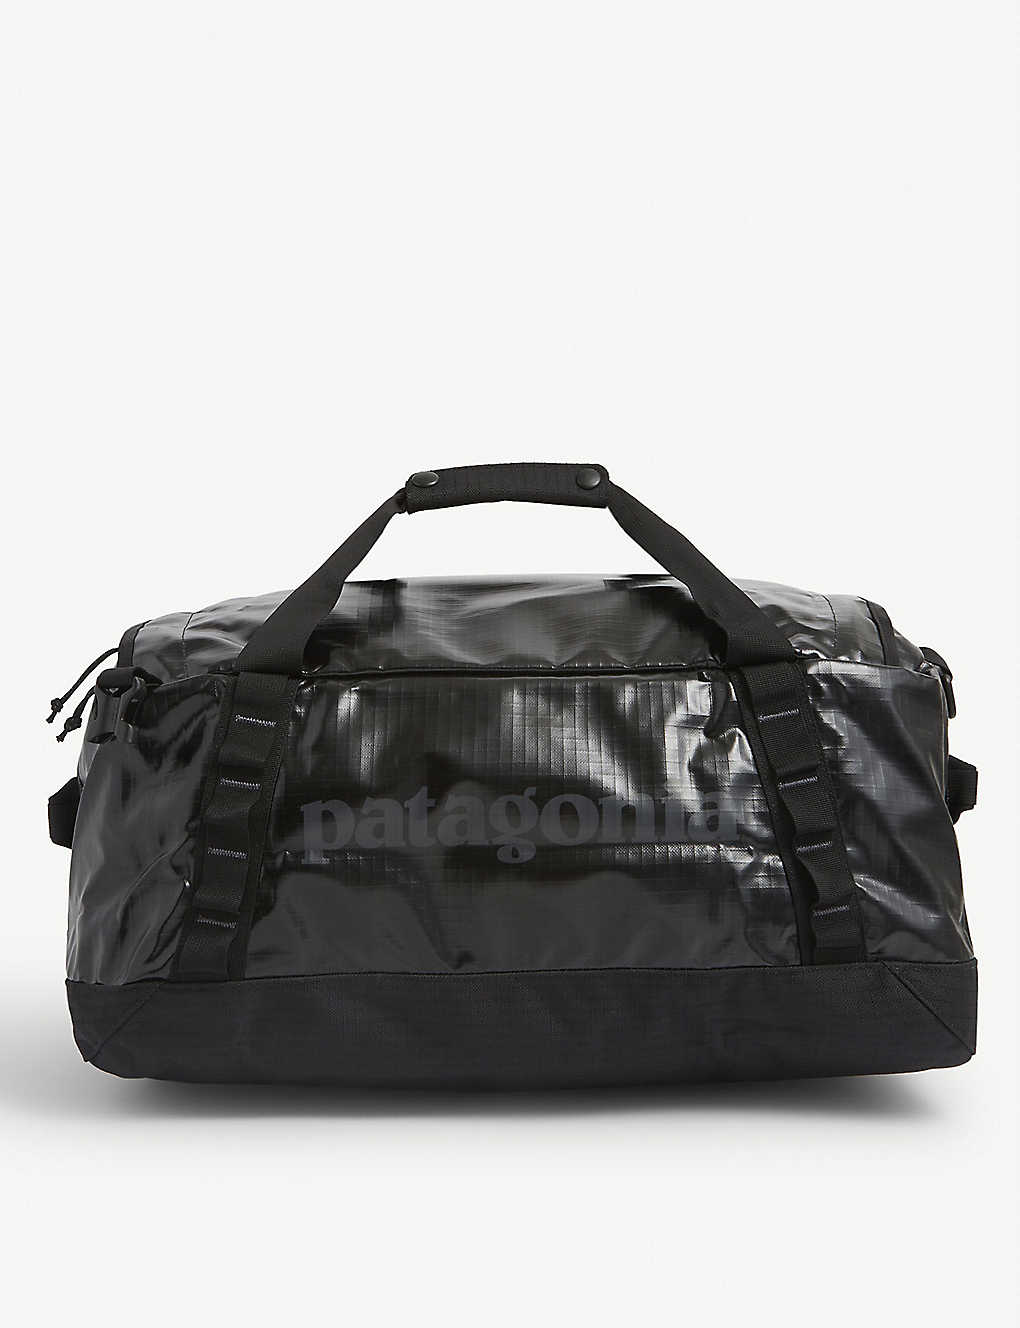 PATAGONIA: Black hole recycled nylon duffle bag